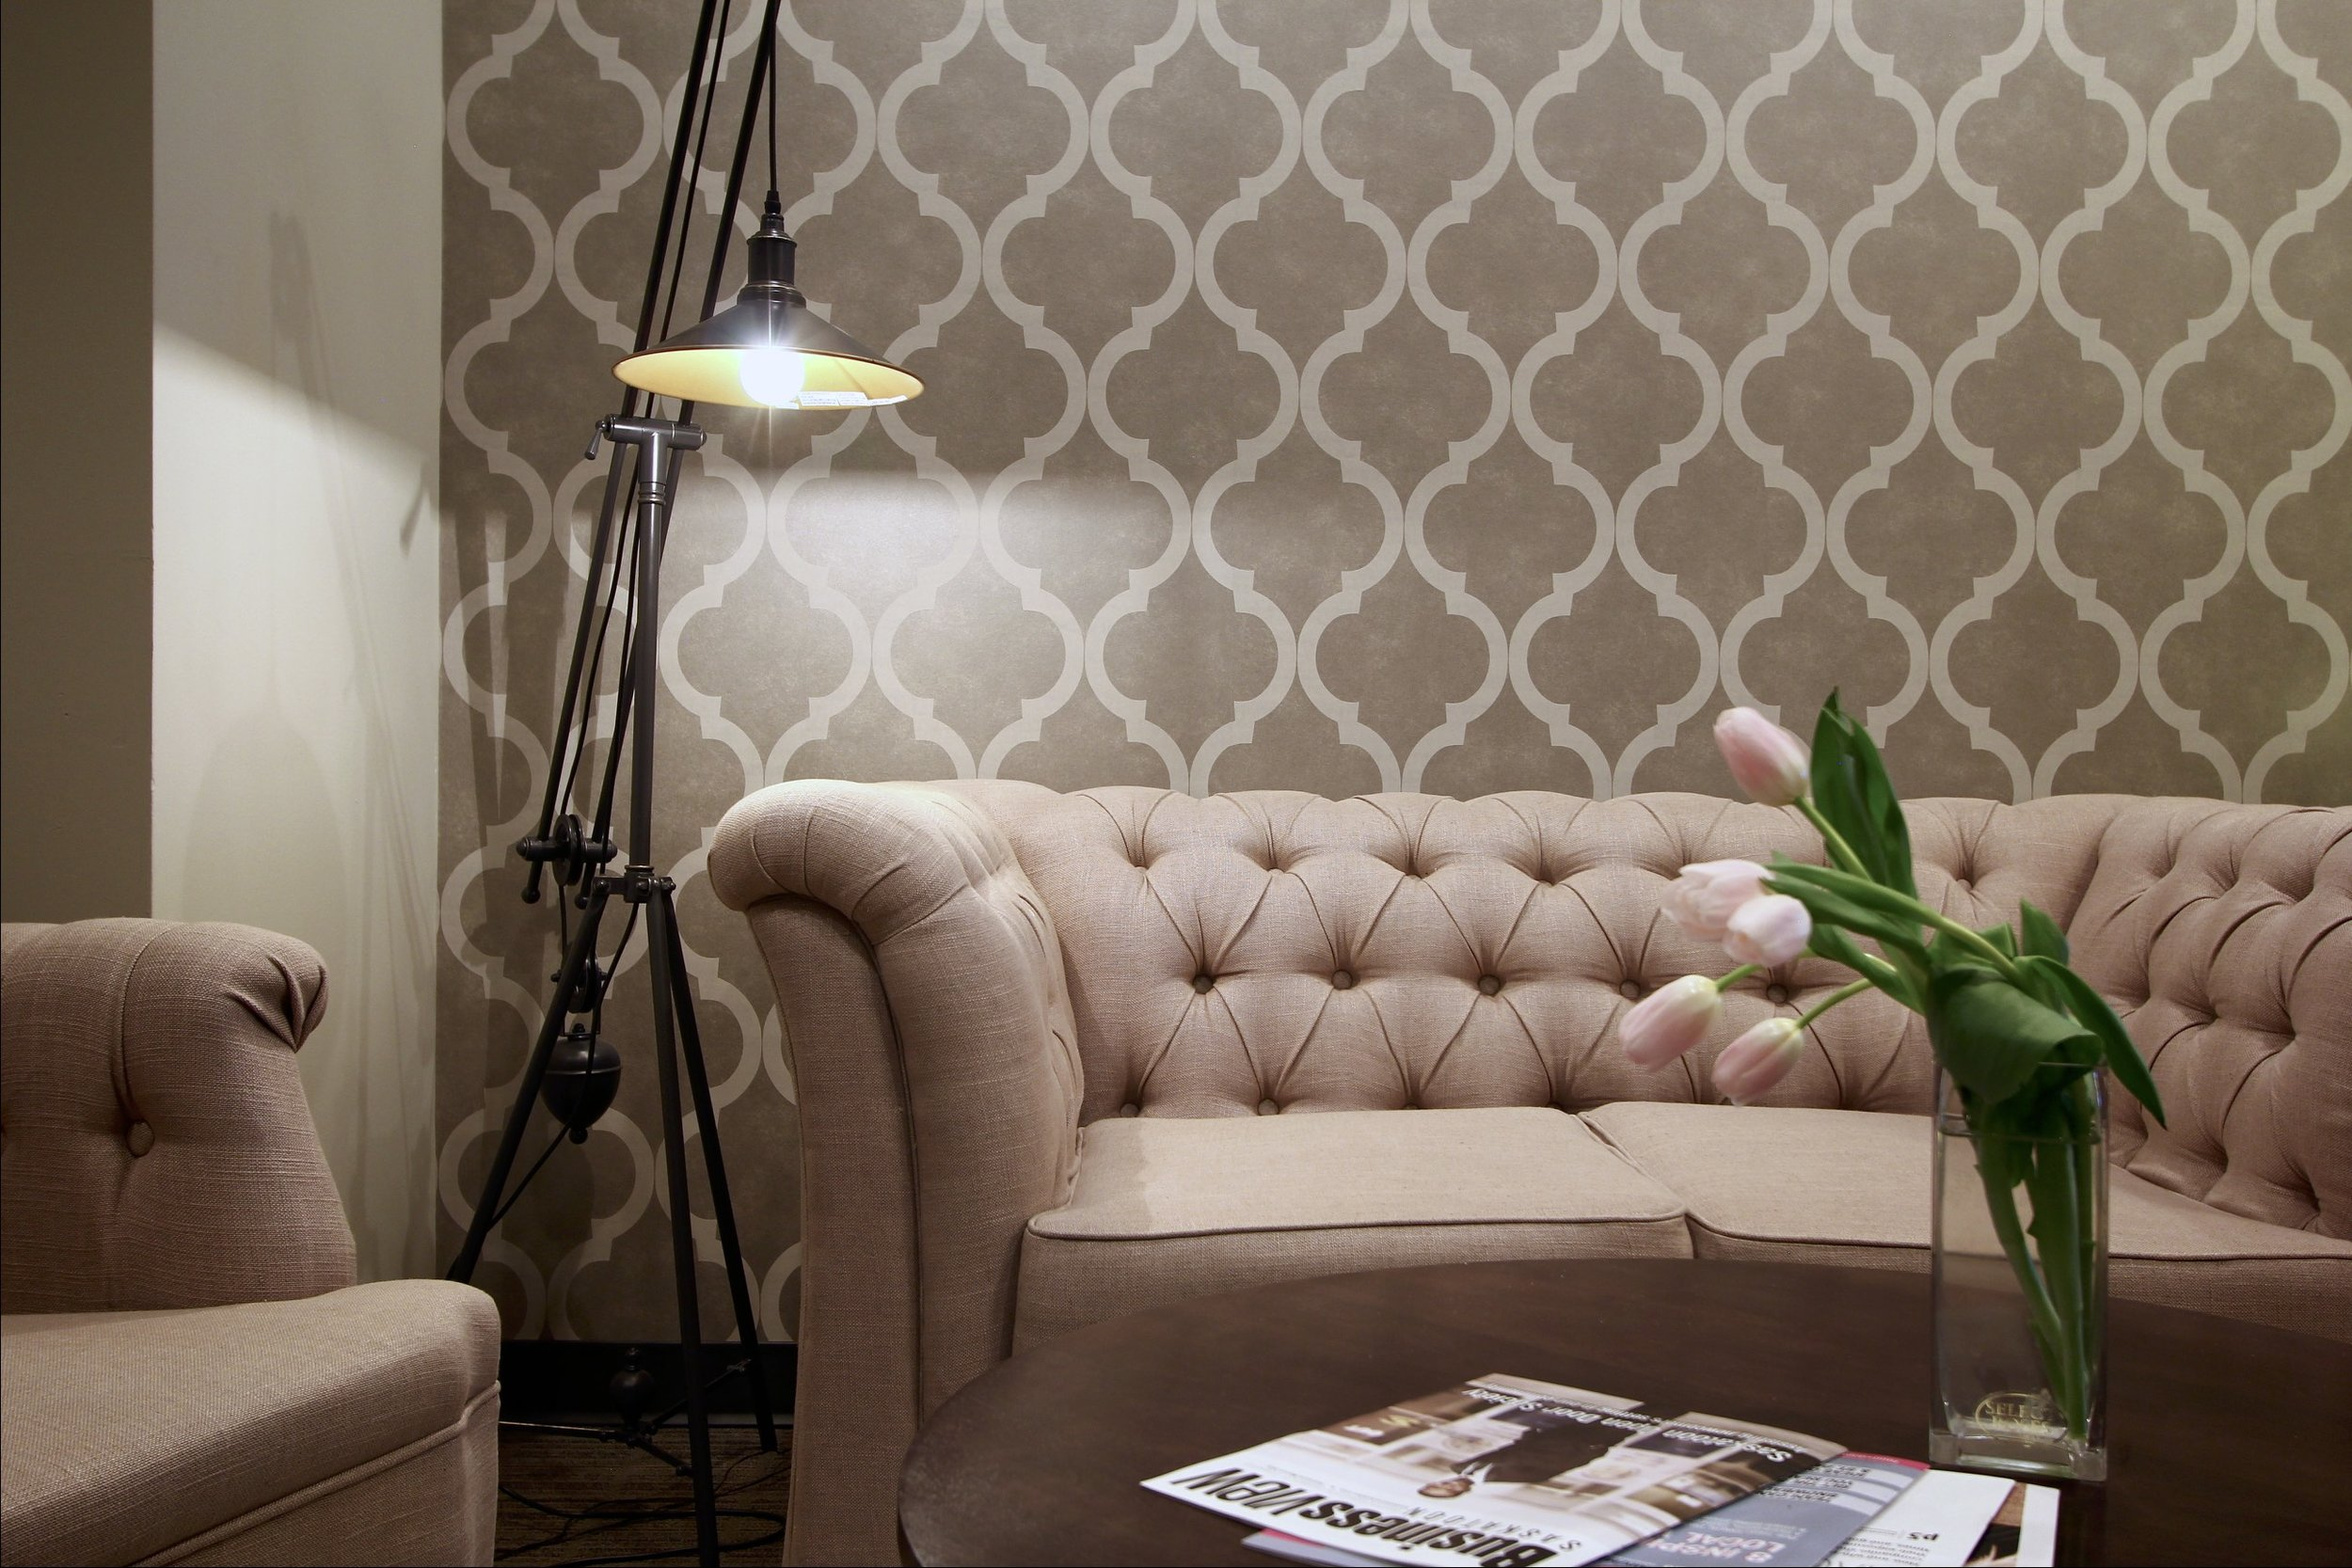 Metric Design Centre, Interior Design, Saskatoon, Commercial Design, Waiting Room, Front Entrance, Tufted Sofa, Floor Lamp, Feature Wall, Renovations, Contractor, Coffee Table, Glam, Rustic.jpg